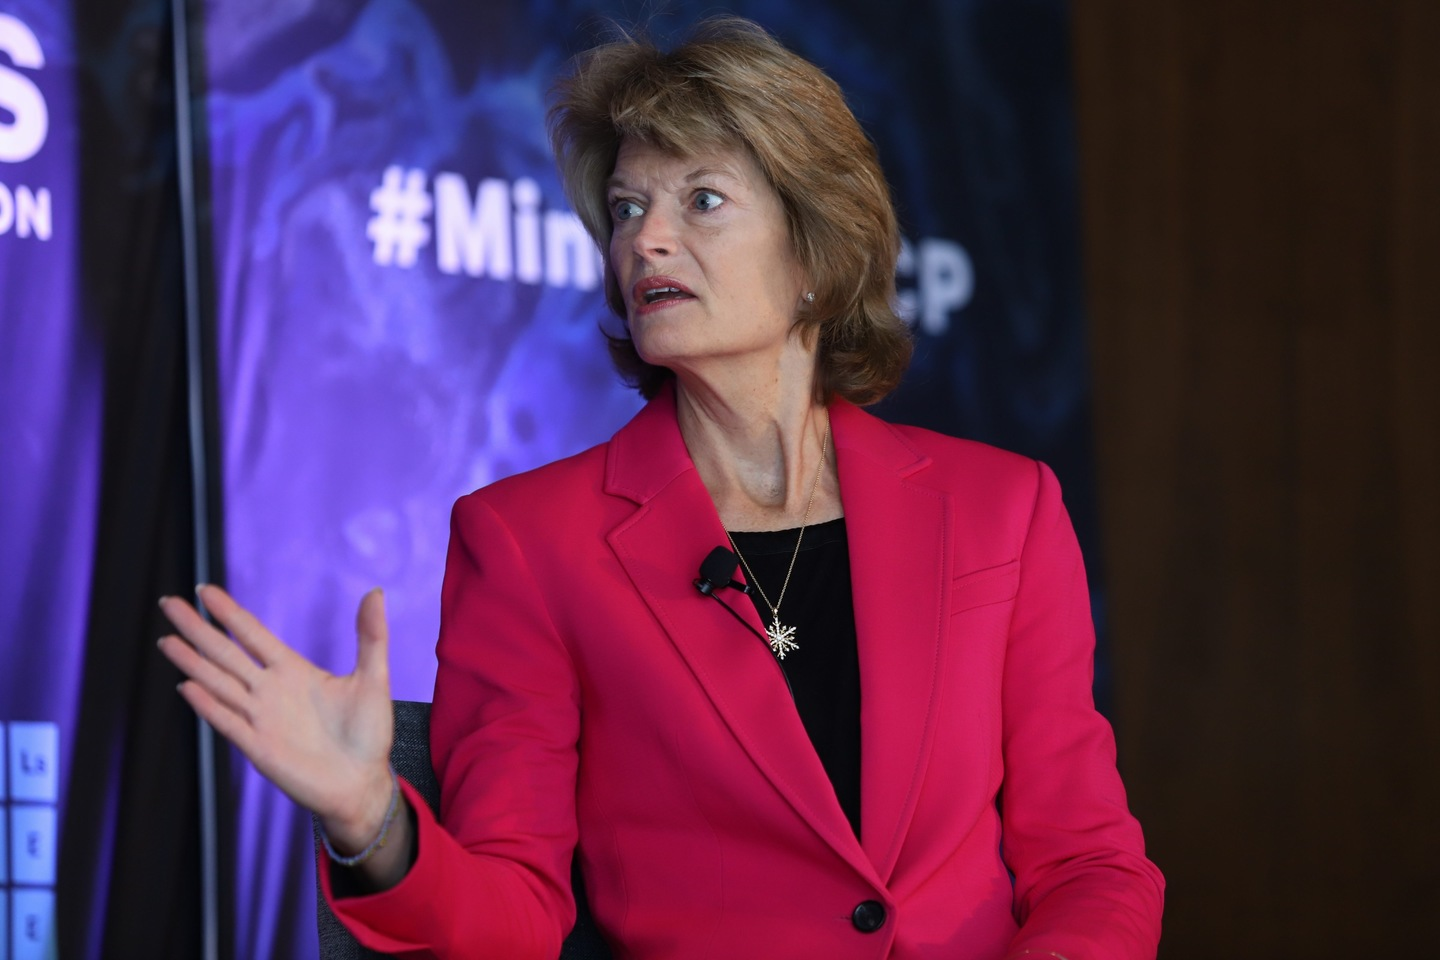 Murkowski: U.S. Made Vulnerable by Lag in Key Mineral Extraction